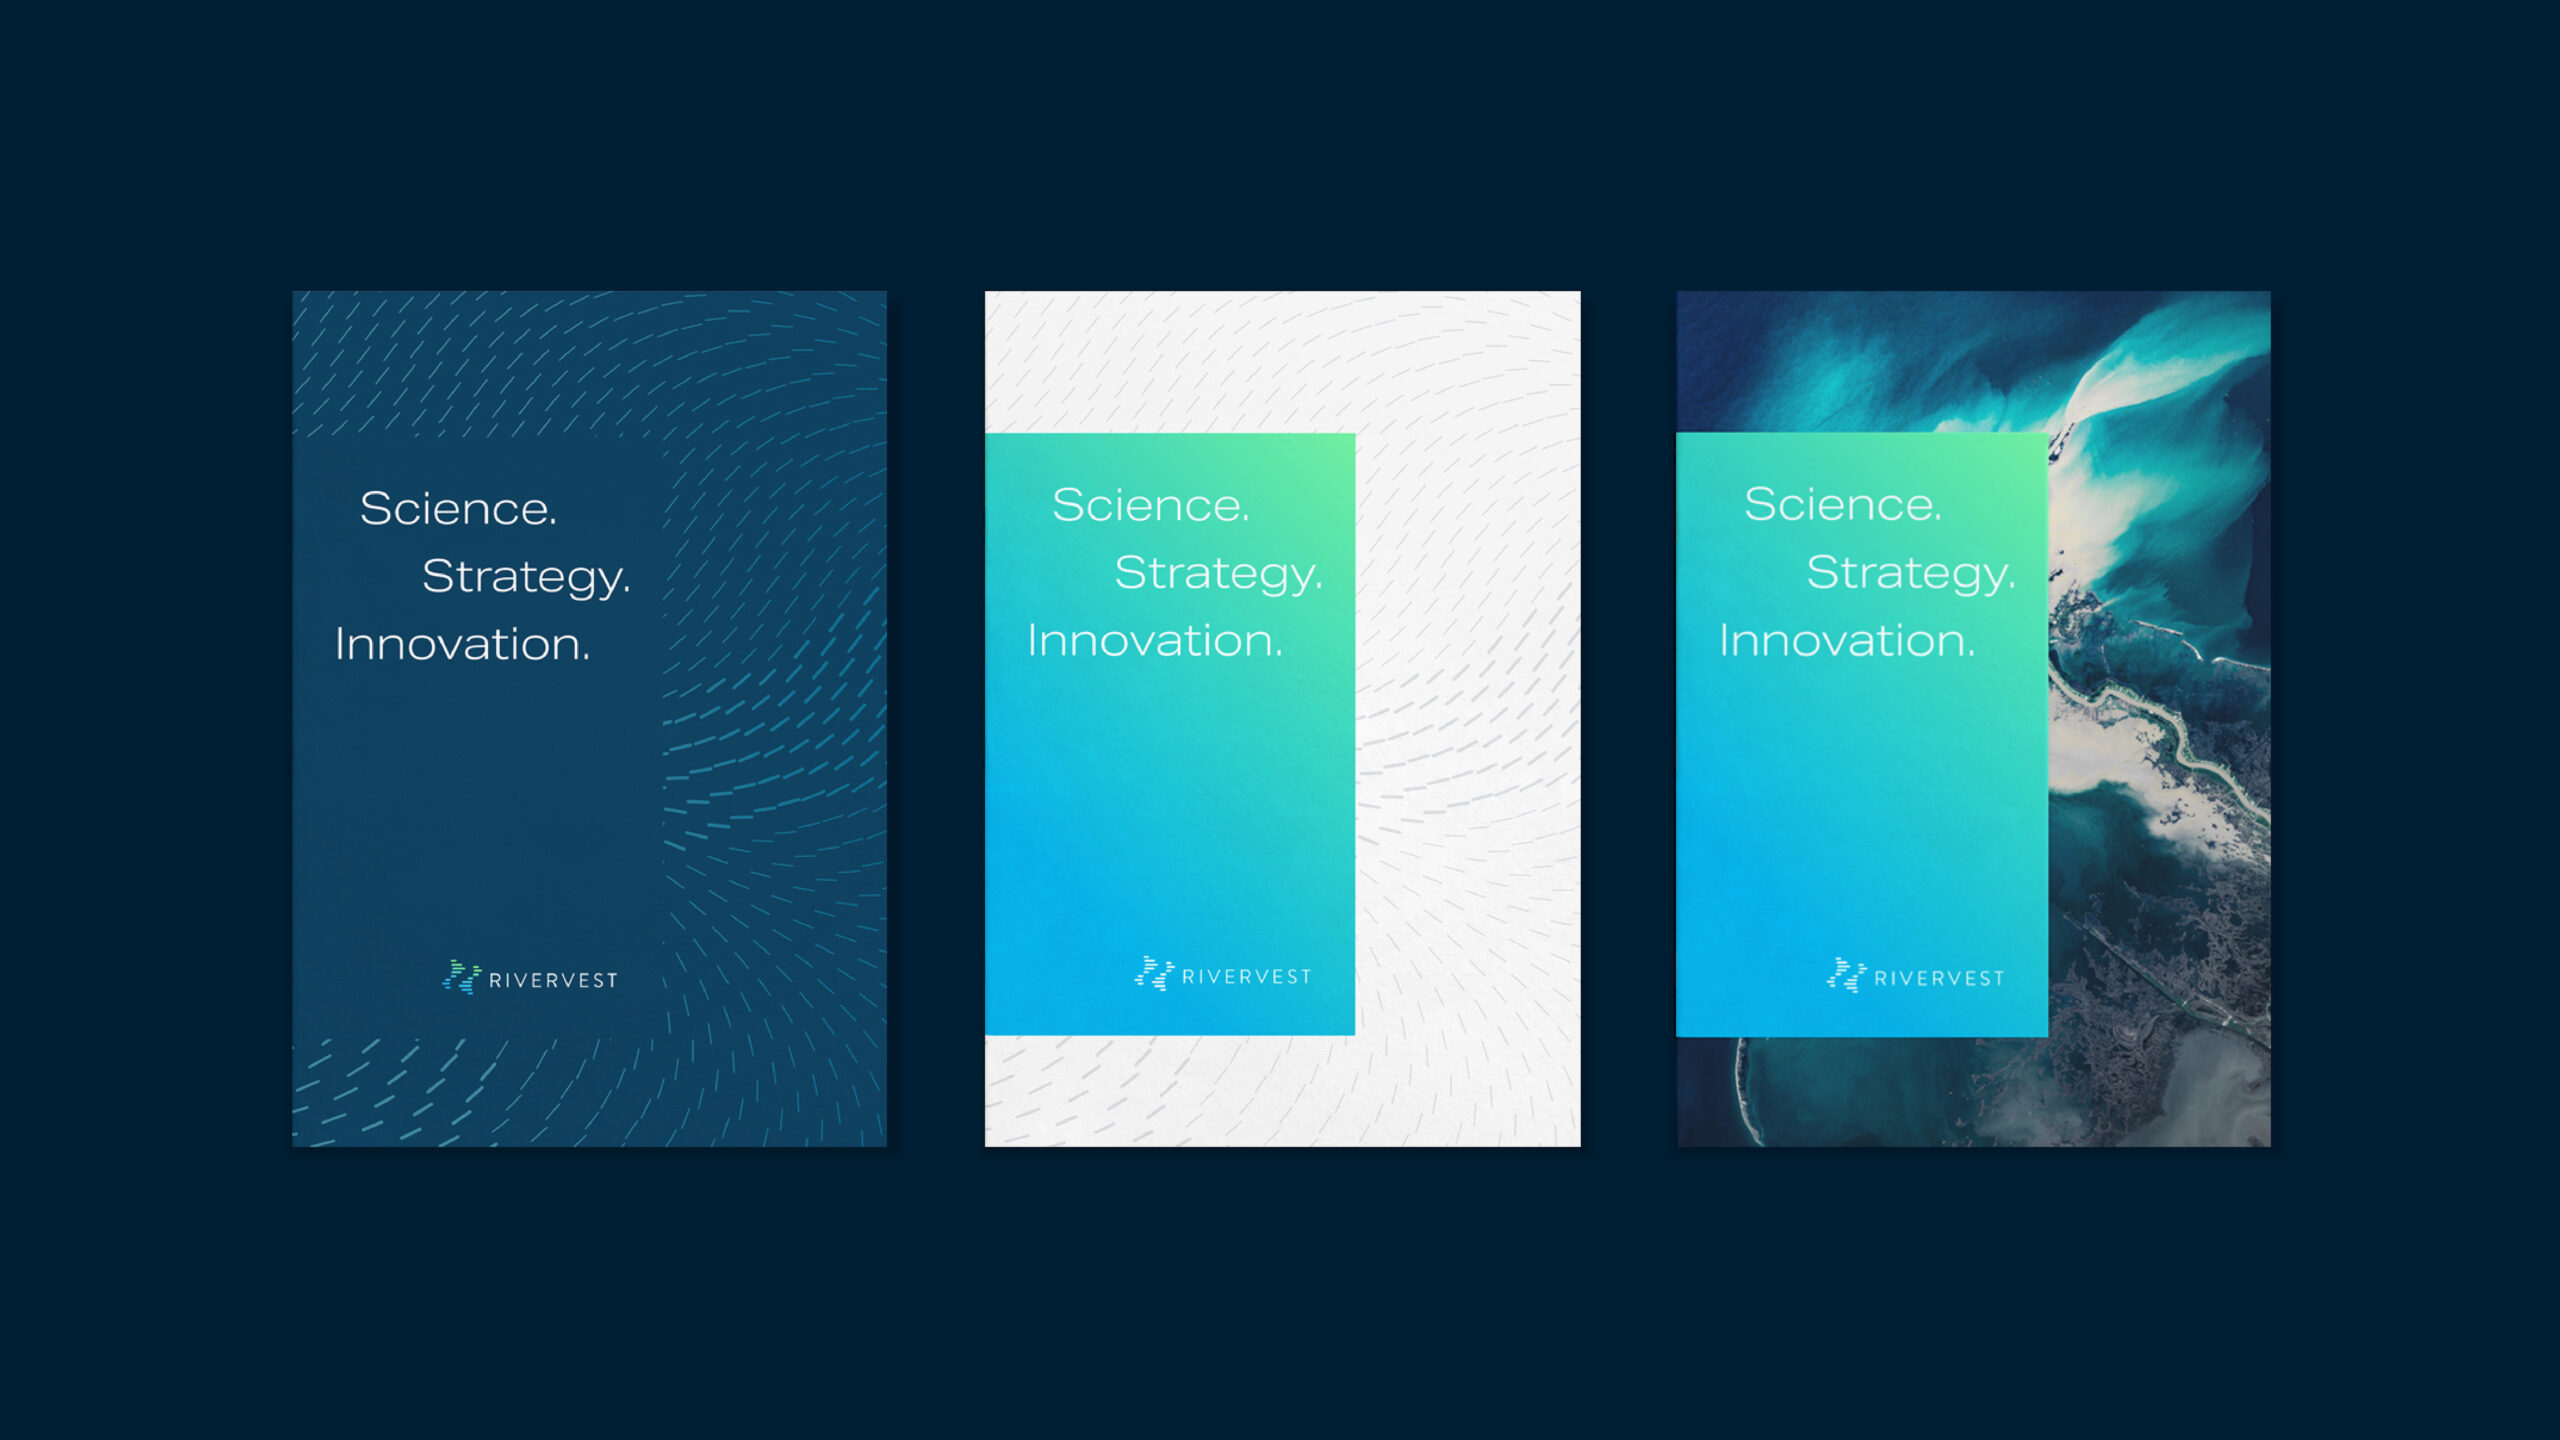 RiverVest proposal covers